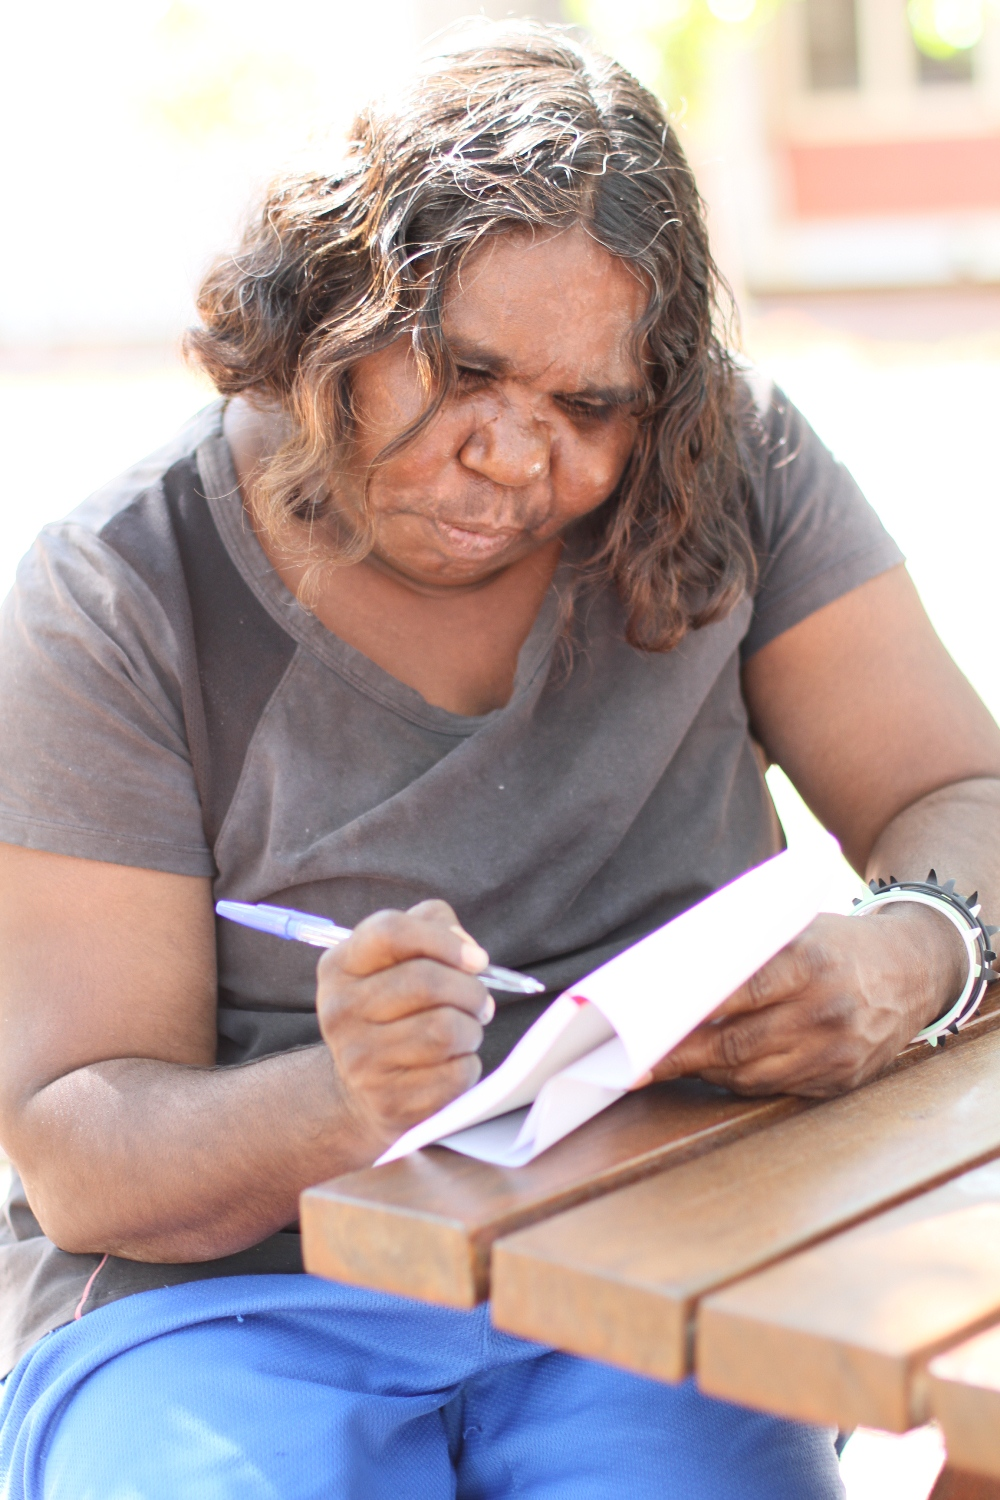 Lillie Spinks composing her voiceover during the practical workshop at the Visual Arts Leadership Program at the University of Notre Dame, Broome © AGWA 2015